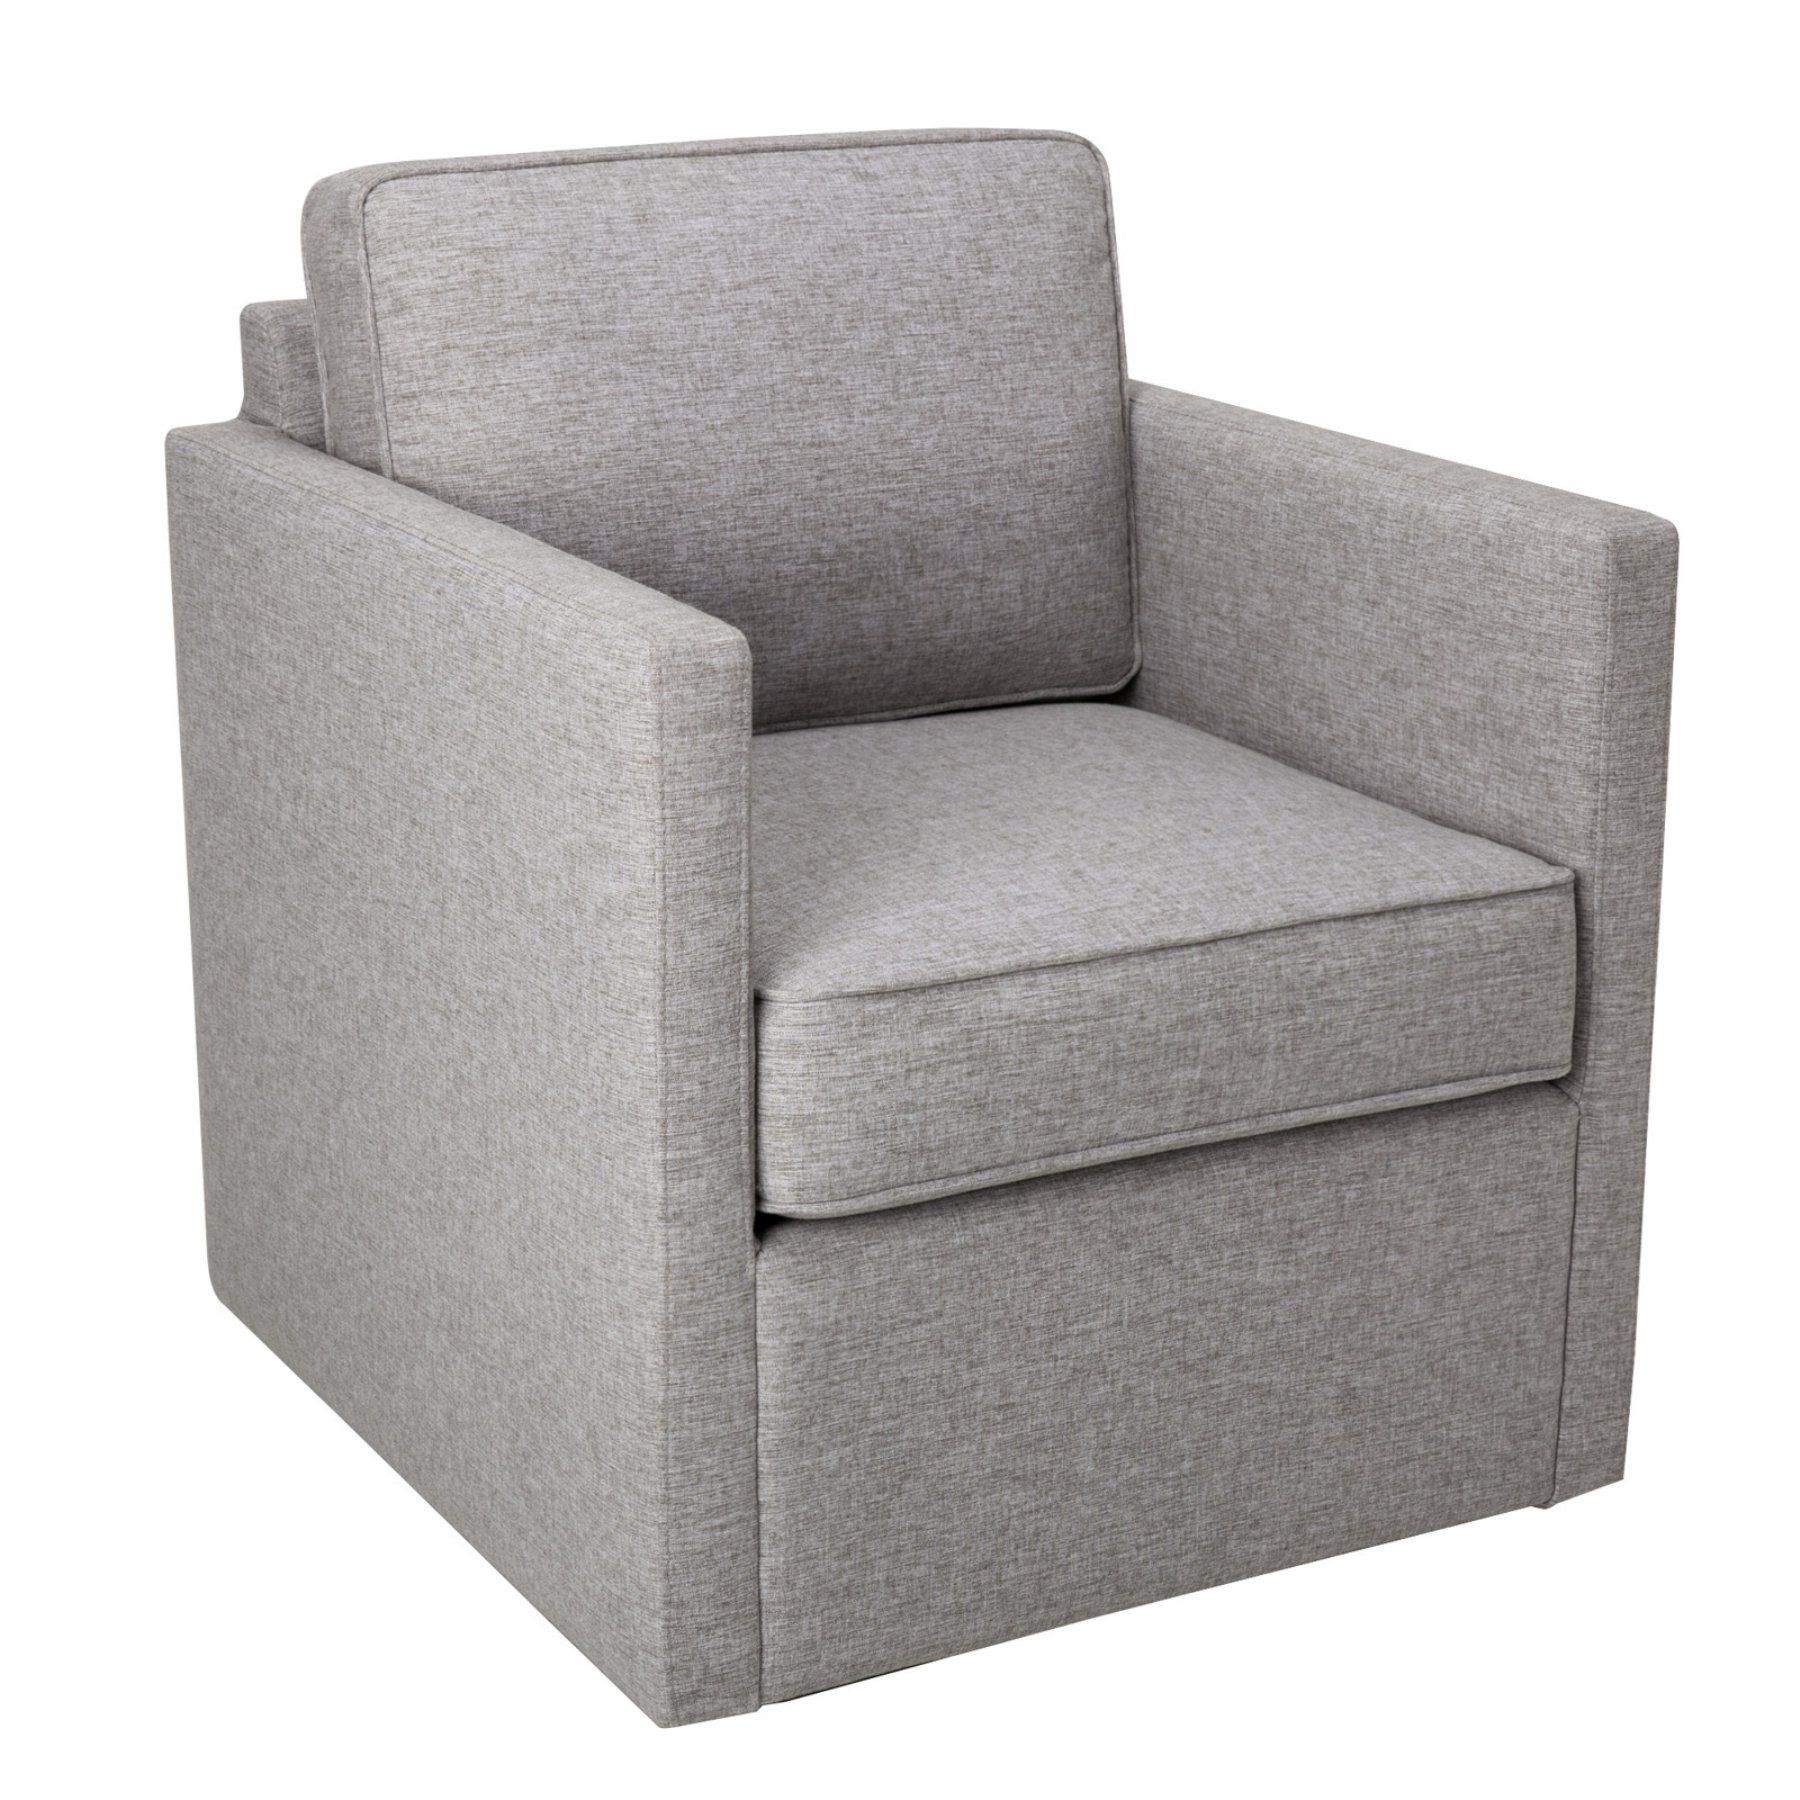 Homepop Accent Chair With Swivel Base Swivel Armchair Homepop